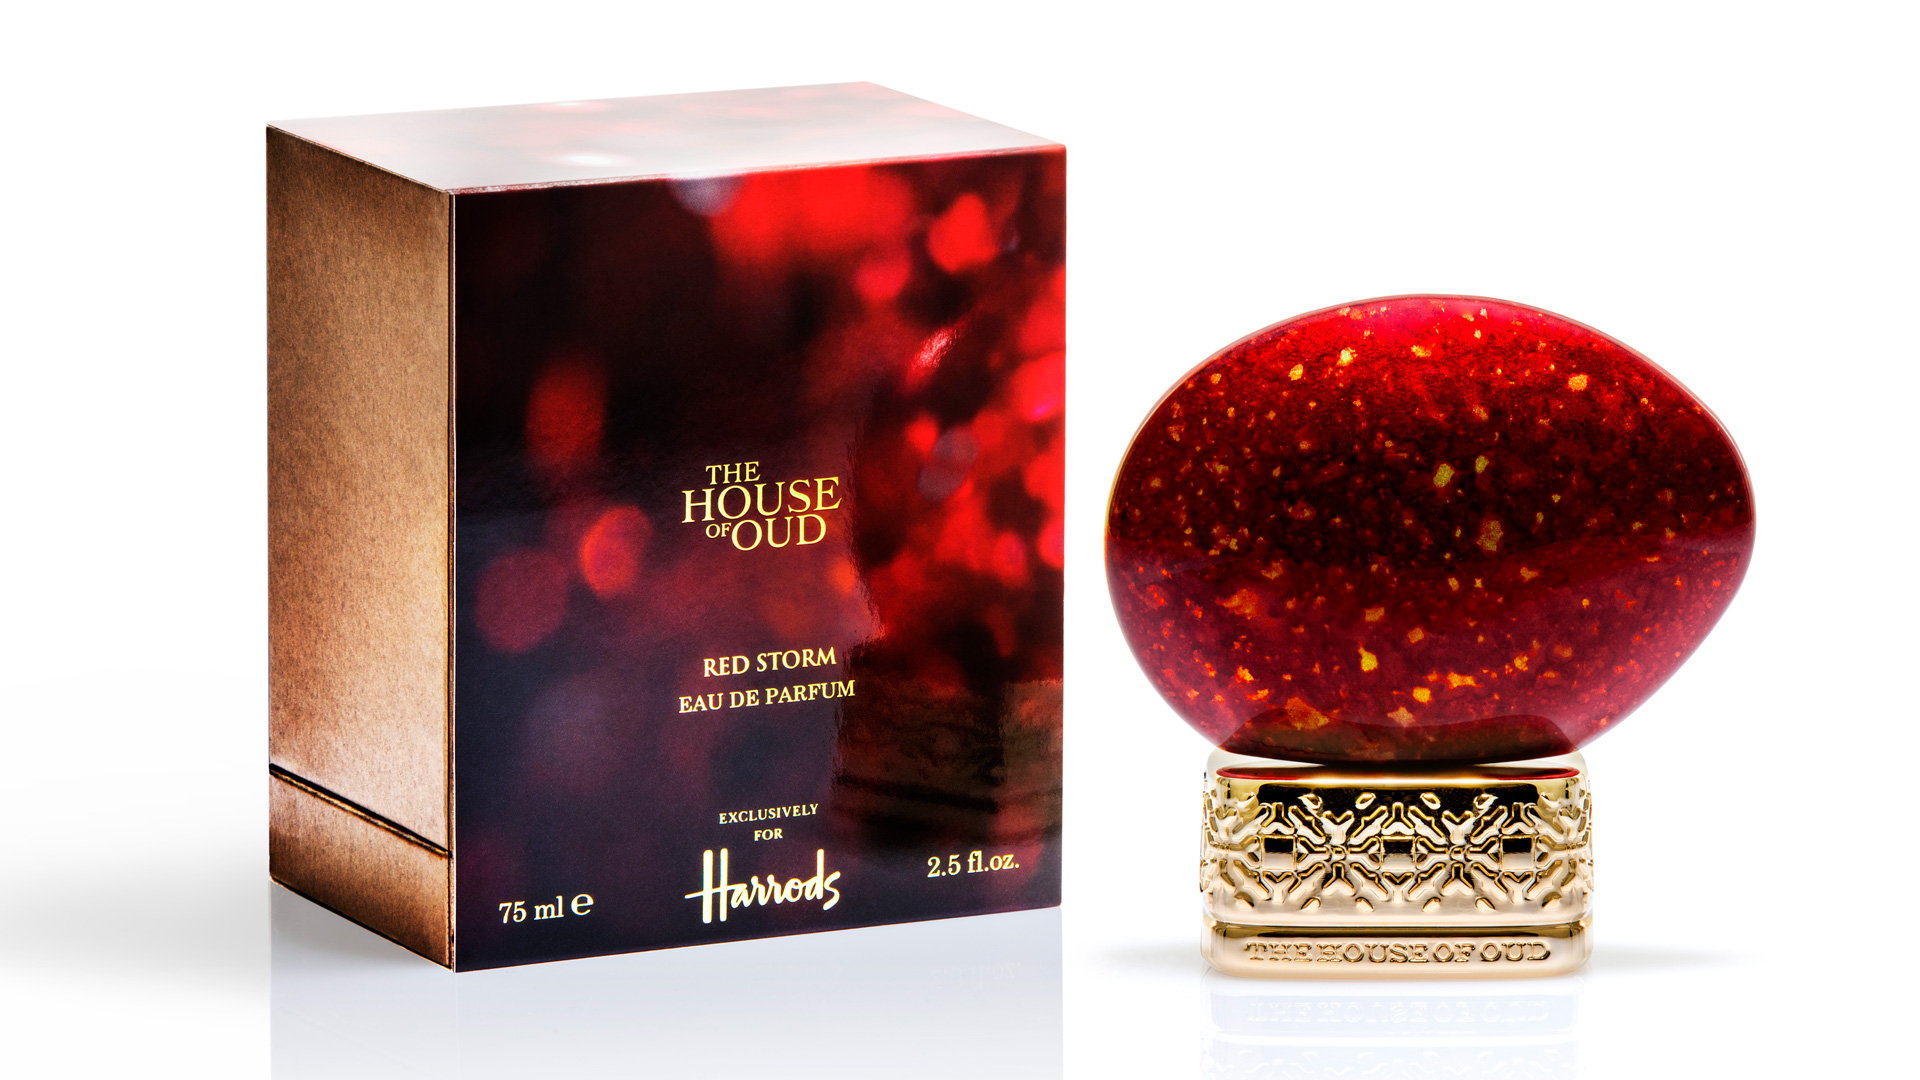 red-storm-harrods-special-edition-perfume-the-house-of-oud-packaging